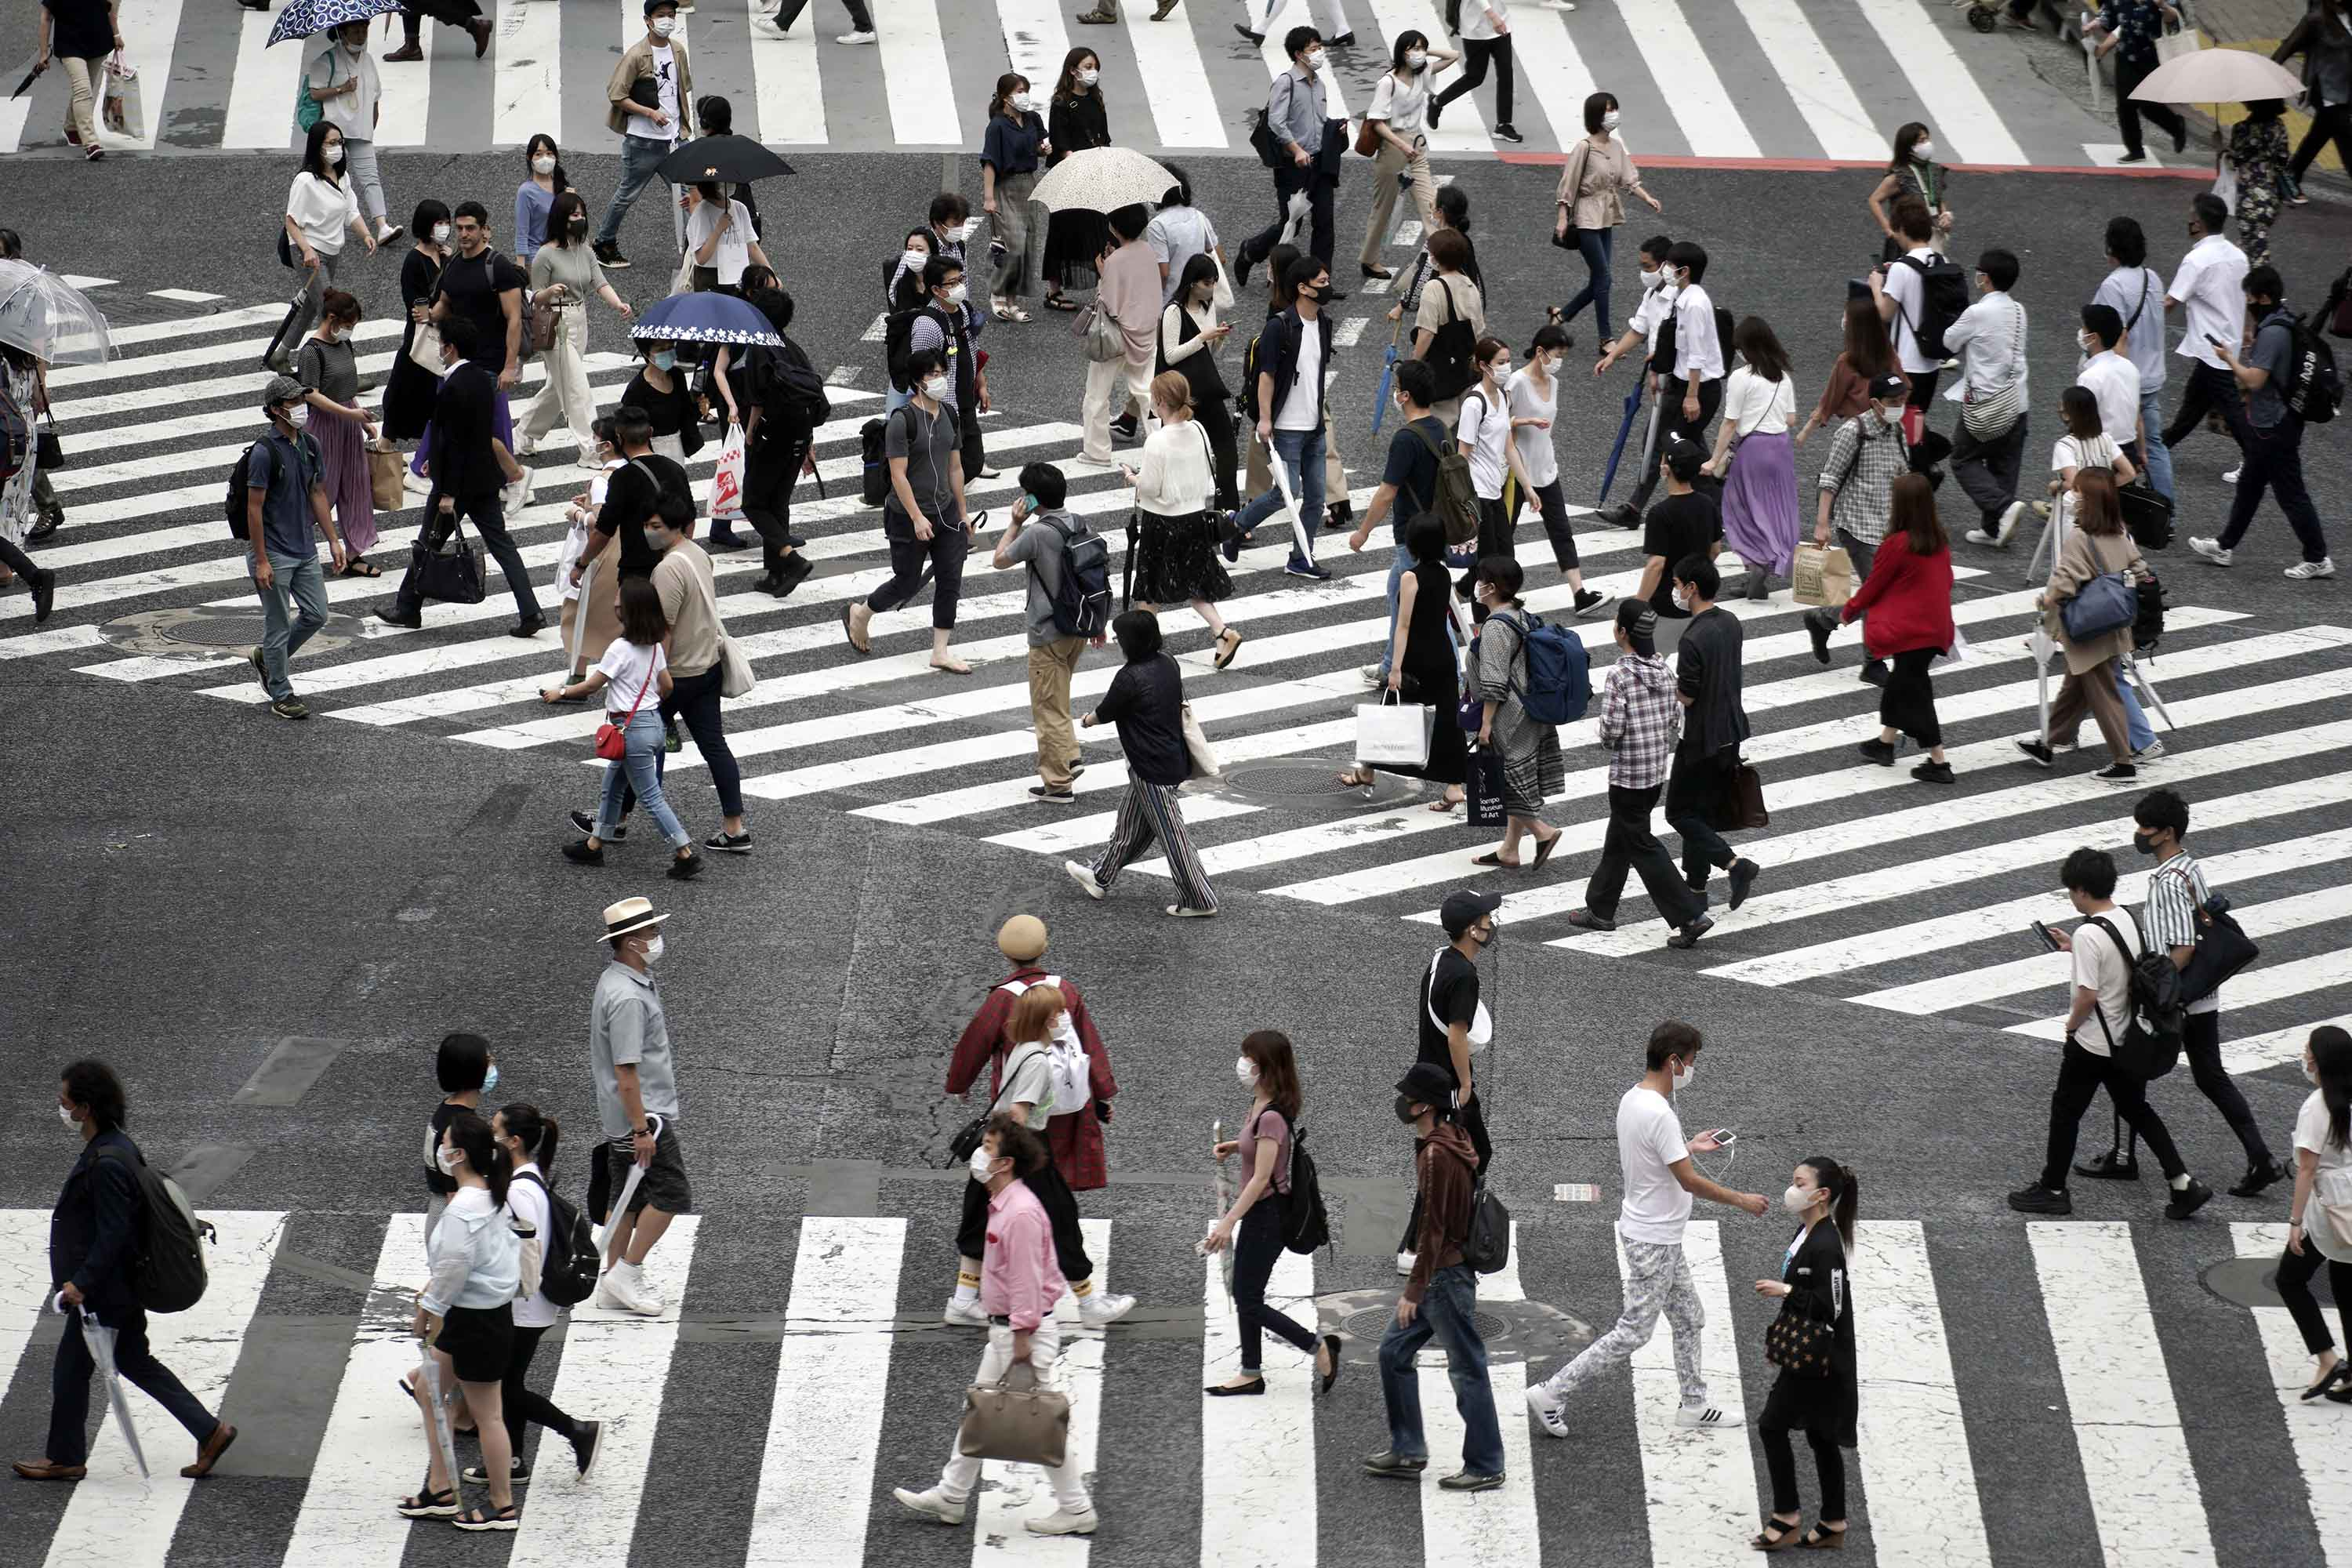 Pedestrians wearing face masks are seen at the Shibuya crossing in Tokyo, on Thursday, July 9.